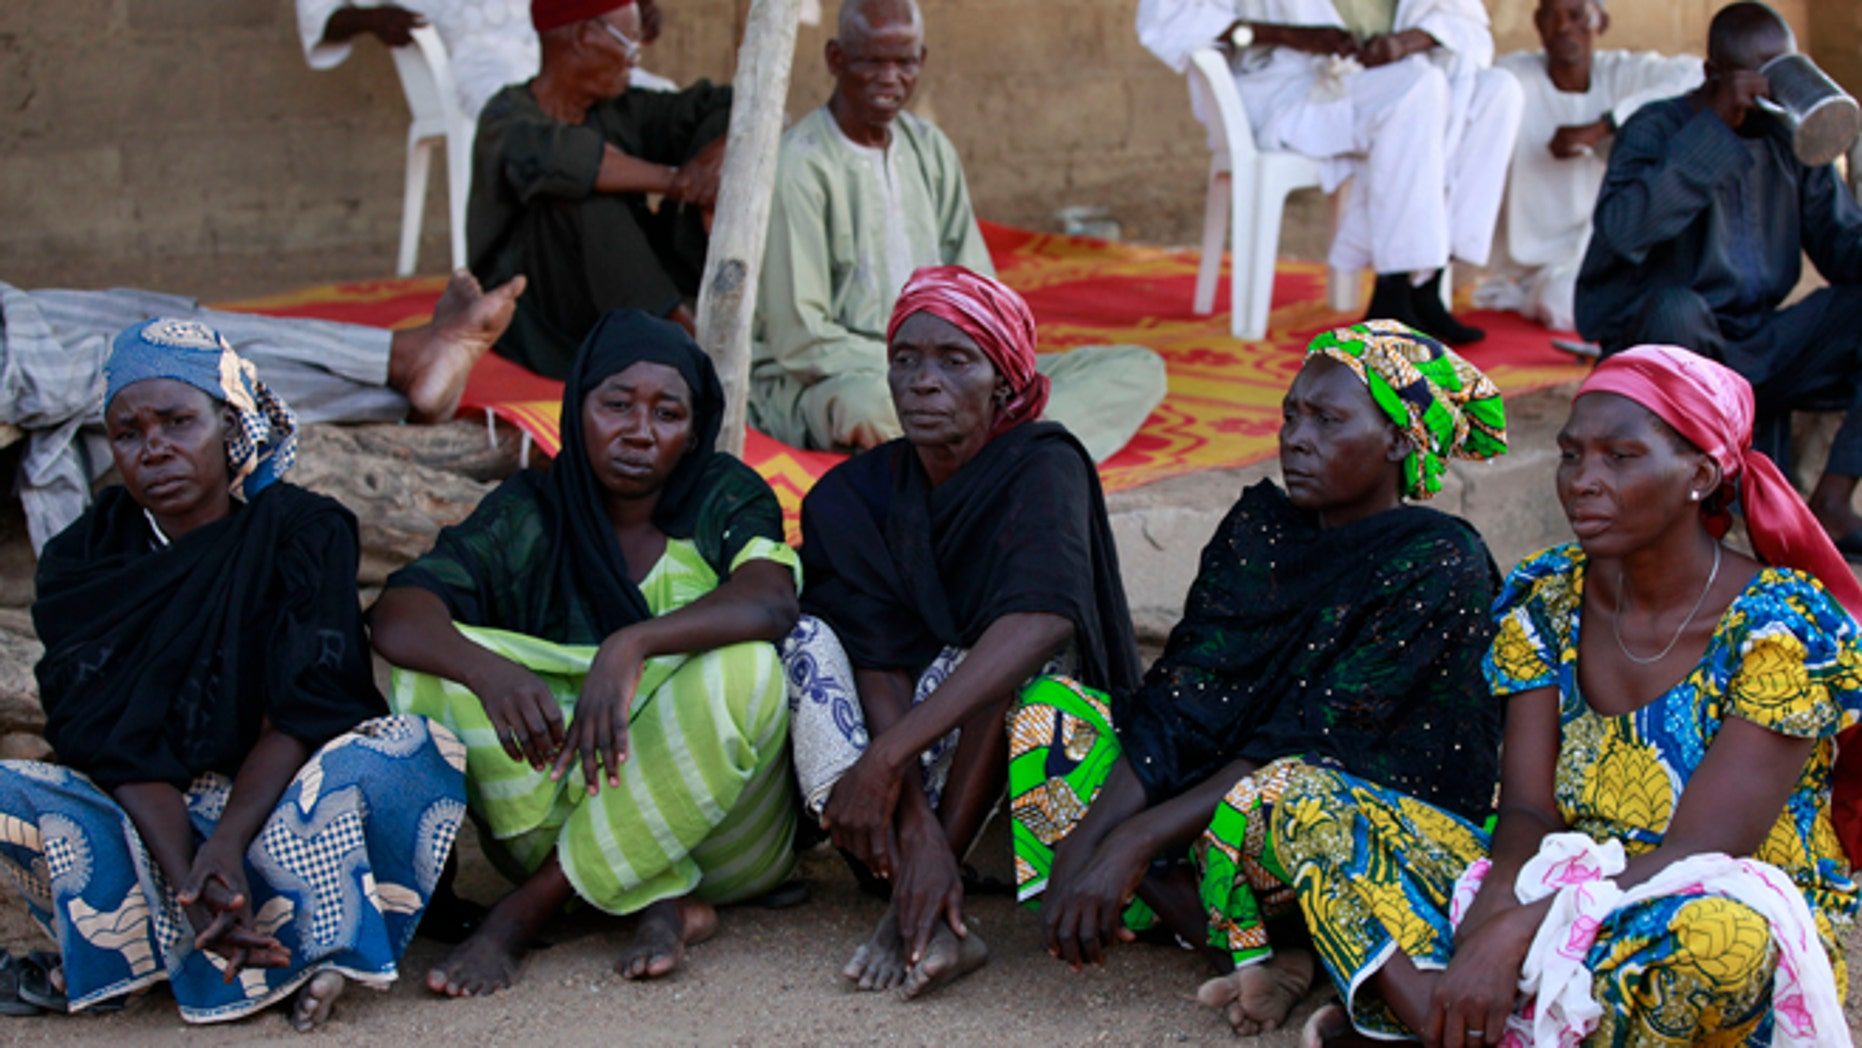 In this Sunday, May 18, 2014 file photo some of the parents of the kidnapped school girls sit outside a compound during a meeting in Chibok, Nigeria. At least 11 parents of the more than 200 kidnapped Nigerian schoolgirls will never see their daughters again. Since the mass abduction of the schoolgirls by Islamic extremists three months ago, at least 11 of their parents have died and their hometown, Chibok, is under siege from the militants, residents report.